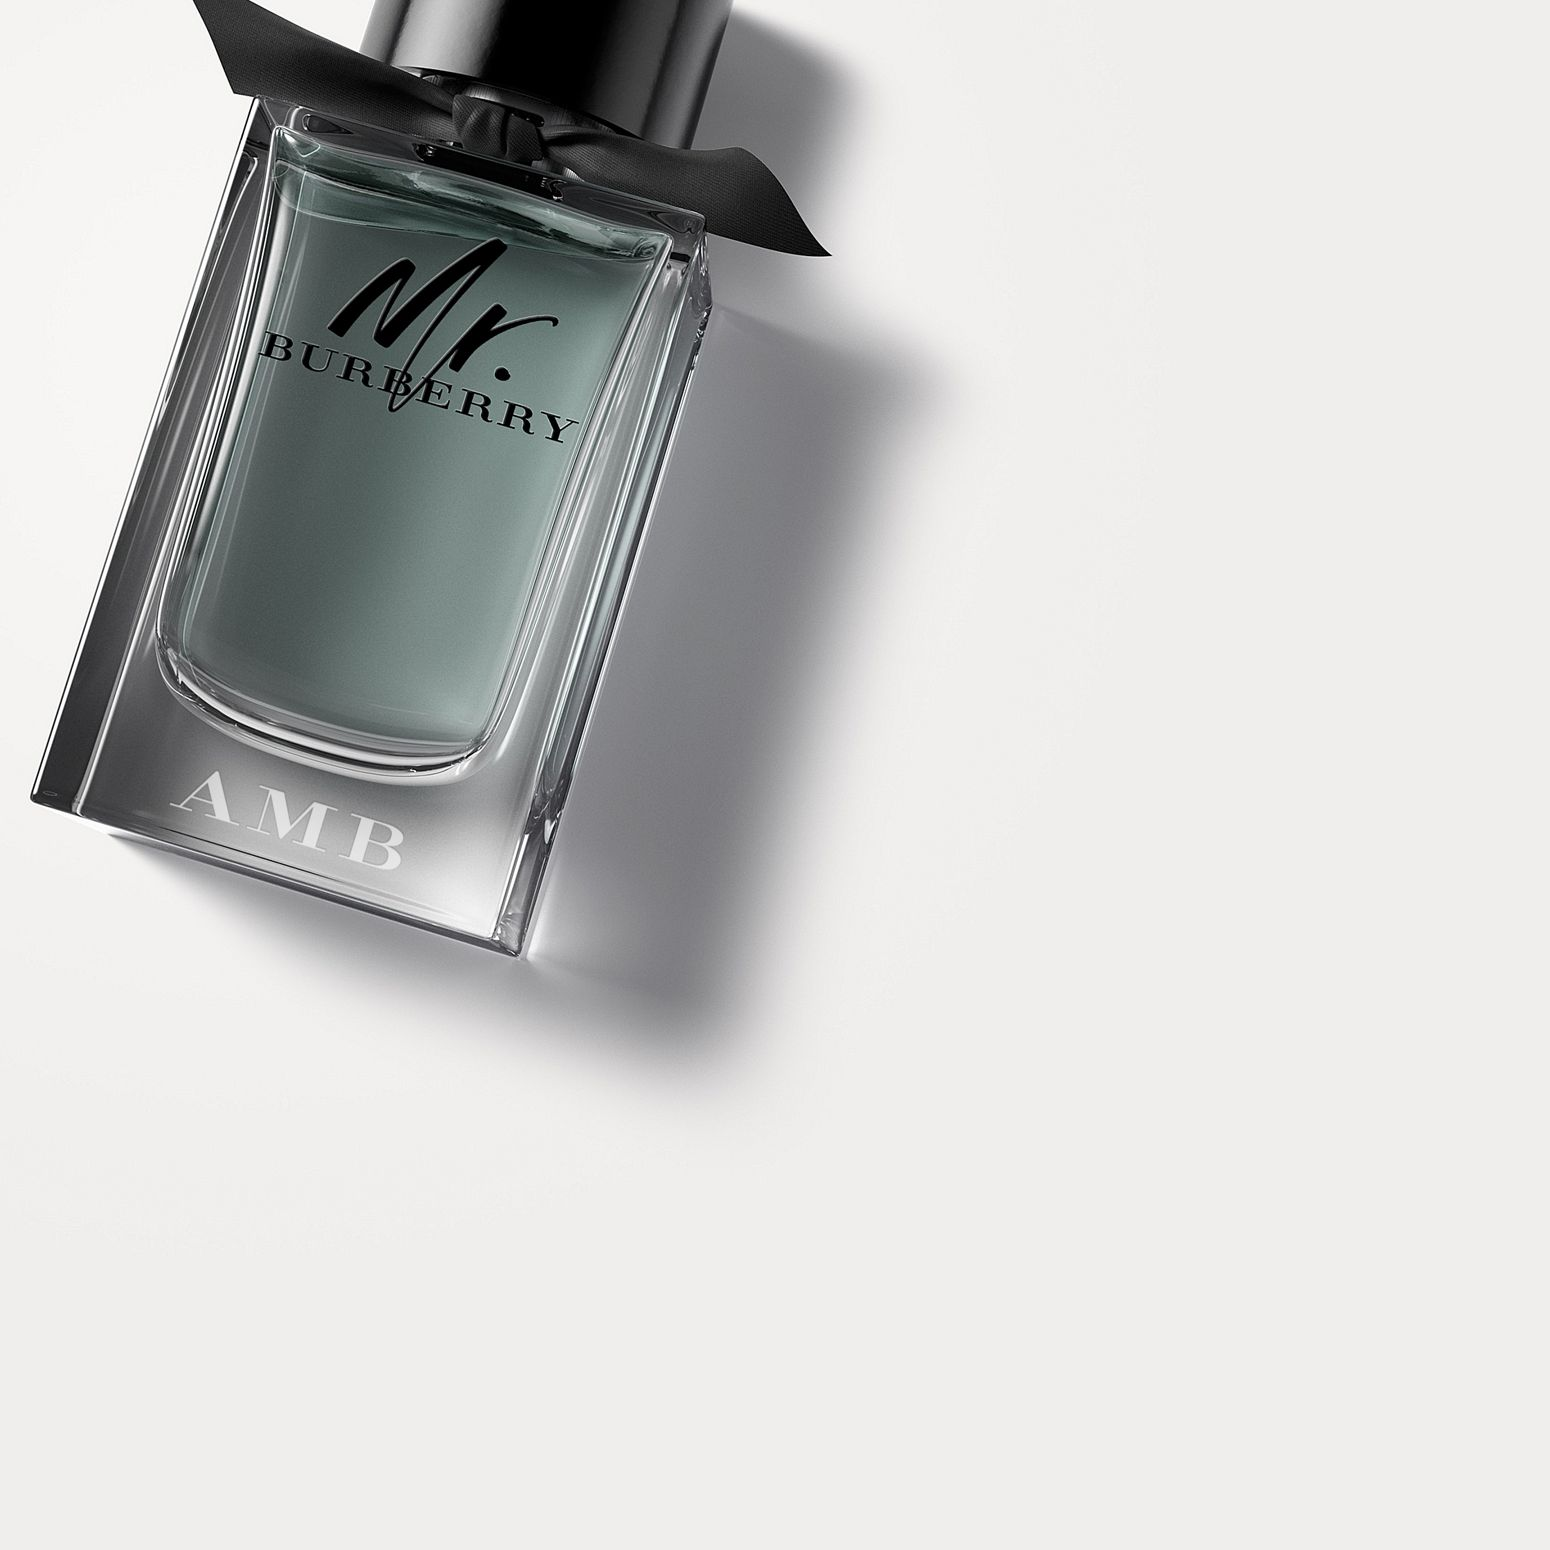 Mr. Burberry Eau de Toilette 150ml | Burberry - gallery image 1